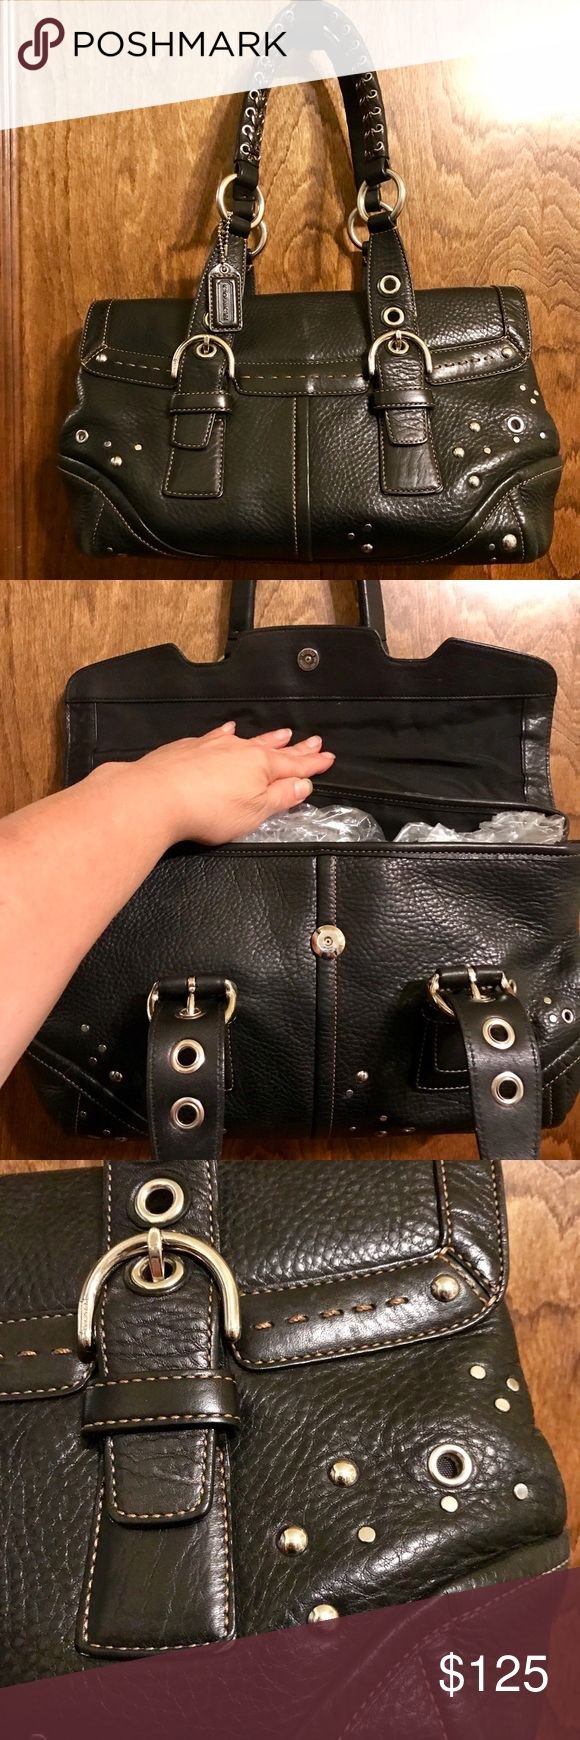 🆕🆒 💥Rare Coach Soho Grommet Bag Purchased from Coach store in Carmel CA. Never seen it anywhere else - ever! 😸 Some wear on one bottom edge o/w pristine. (Inside looks dirty in pic but it isn't - that's the light.) Flap with magnetic closure. One large inner zip pocket and two smaller open ones. Metal feet. Adjustable straps. And it's expandable by opening the side snaps! Well made. Not a lightweight bag. Little Coach logo leather fob included! Comes w dust bag. Thank you! 💋 Style…